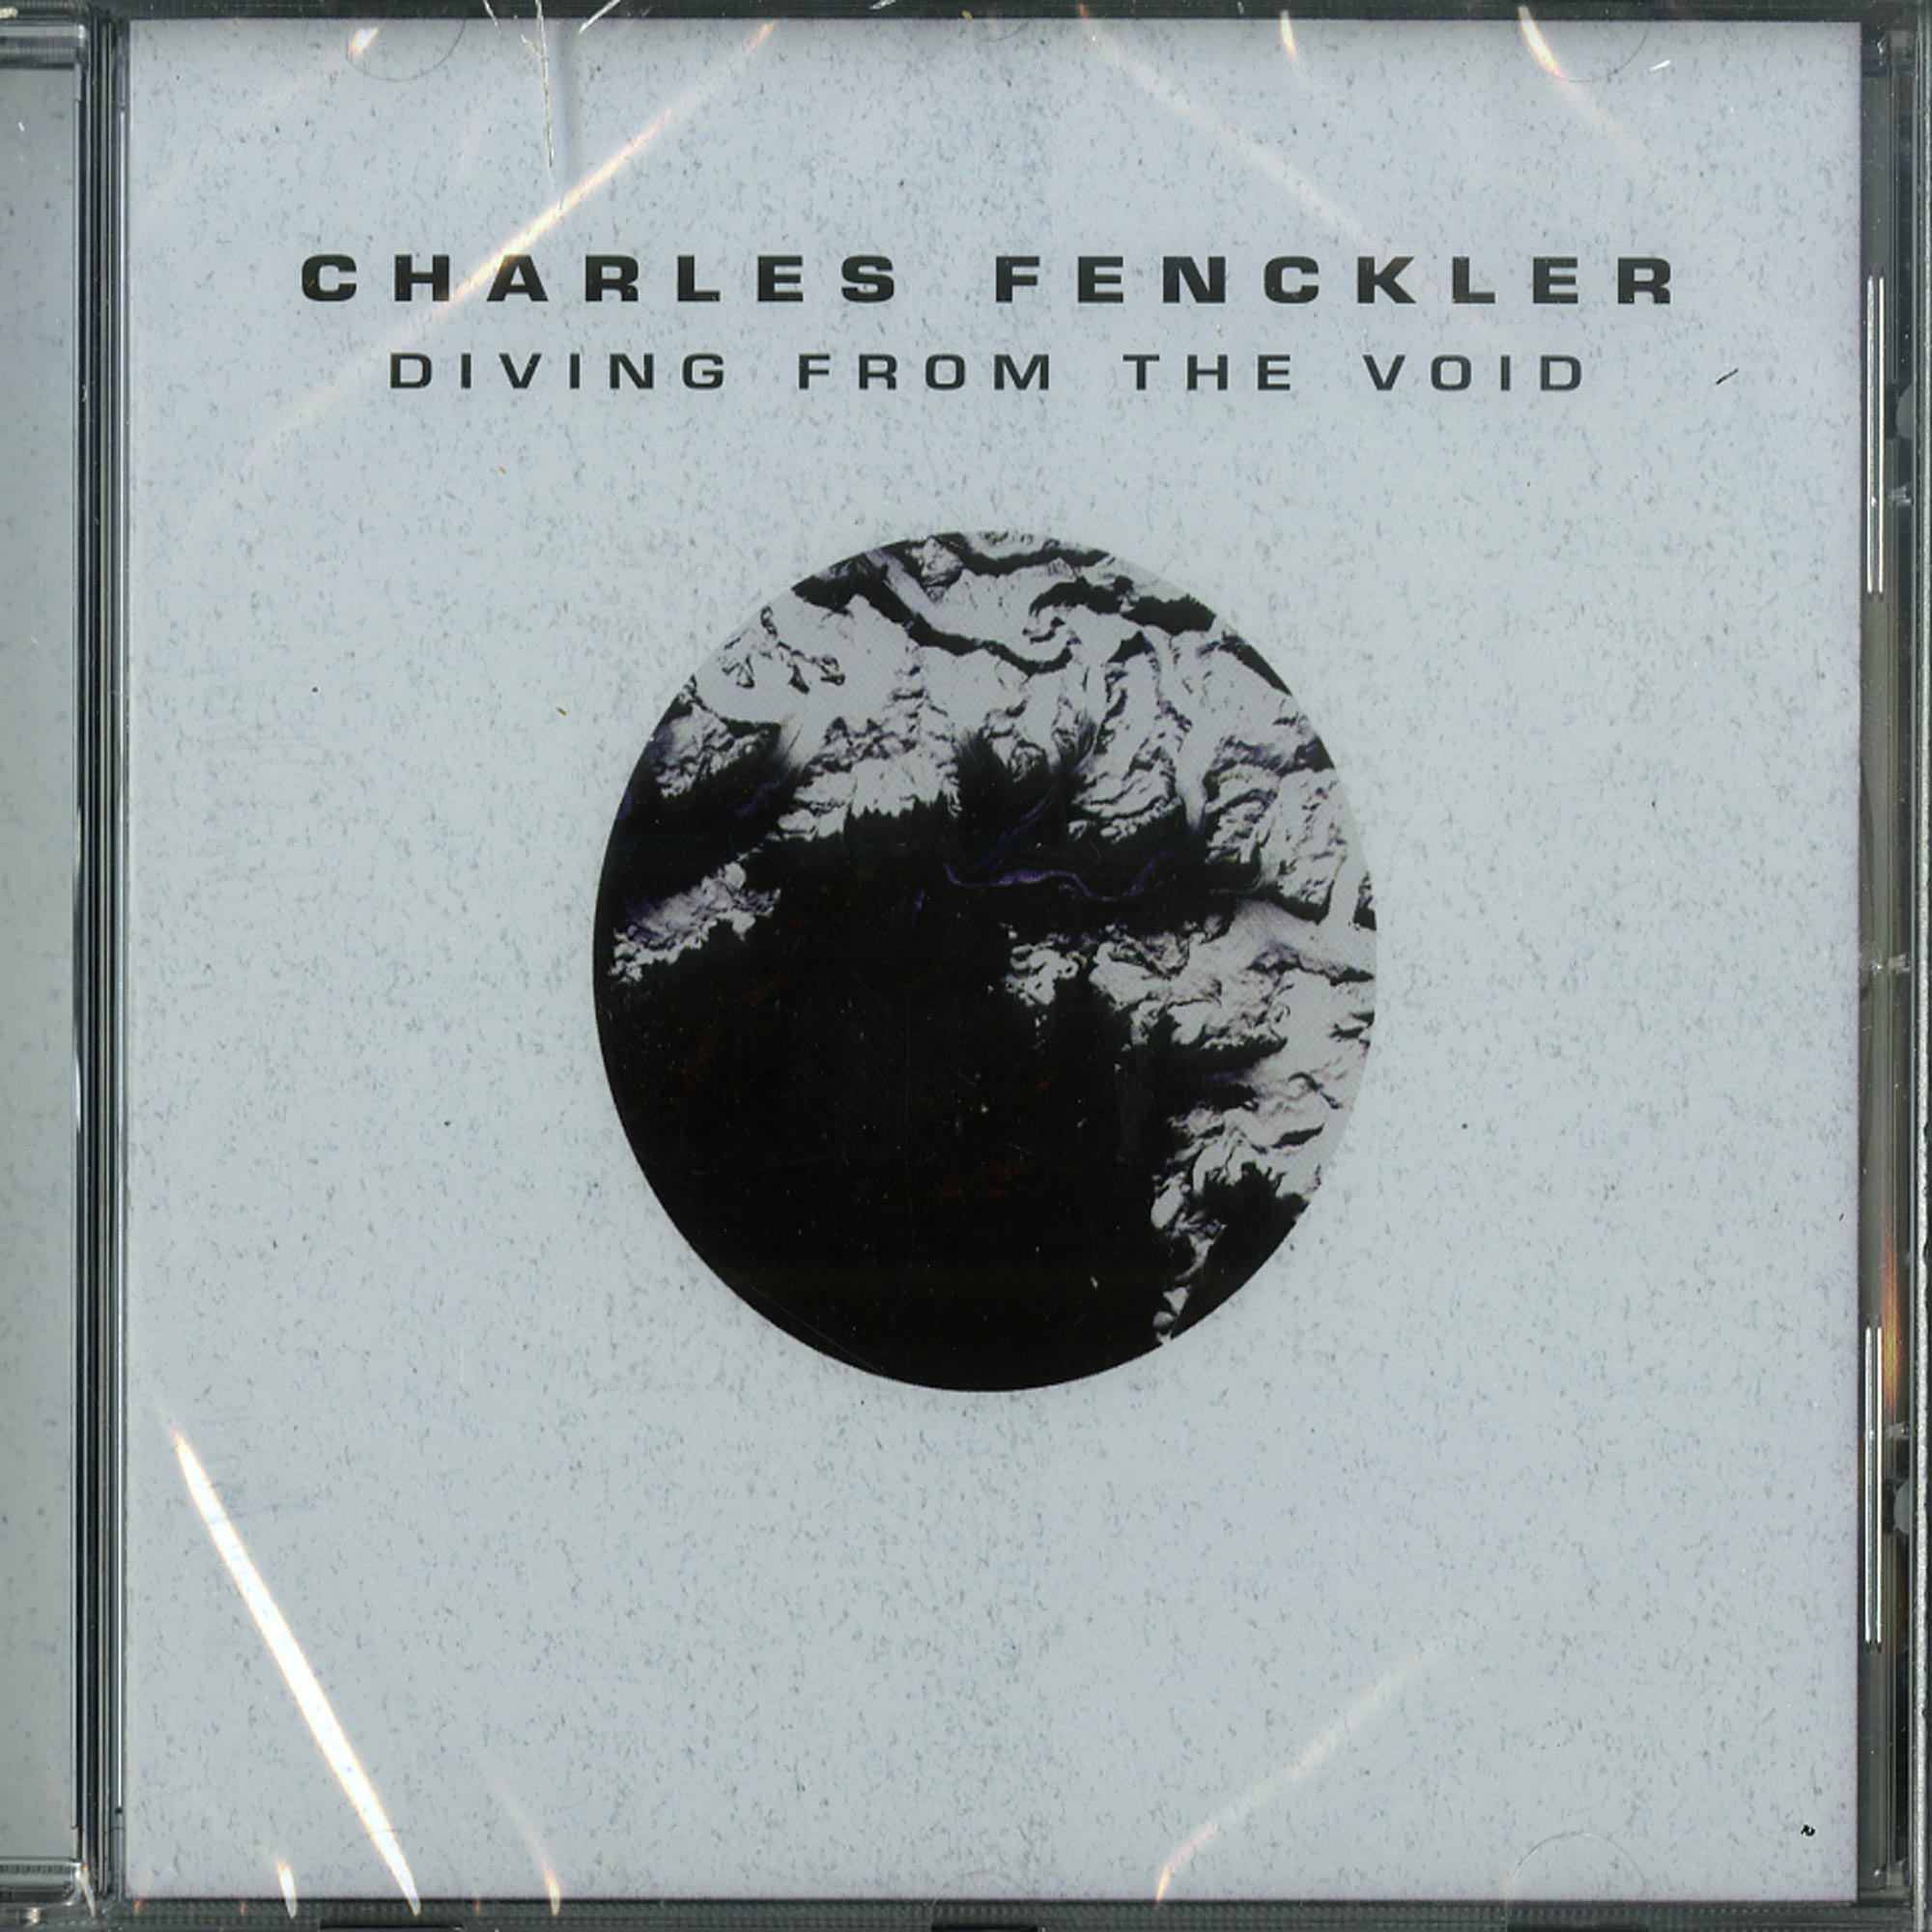 Charles Fenckler - DIVING FROM THE VOID